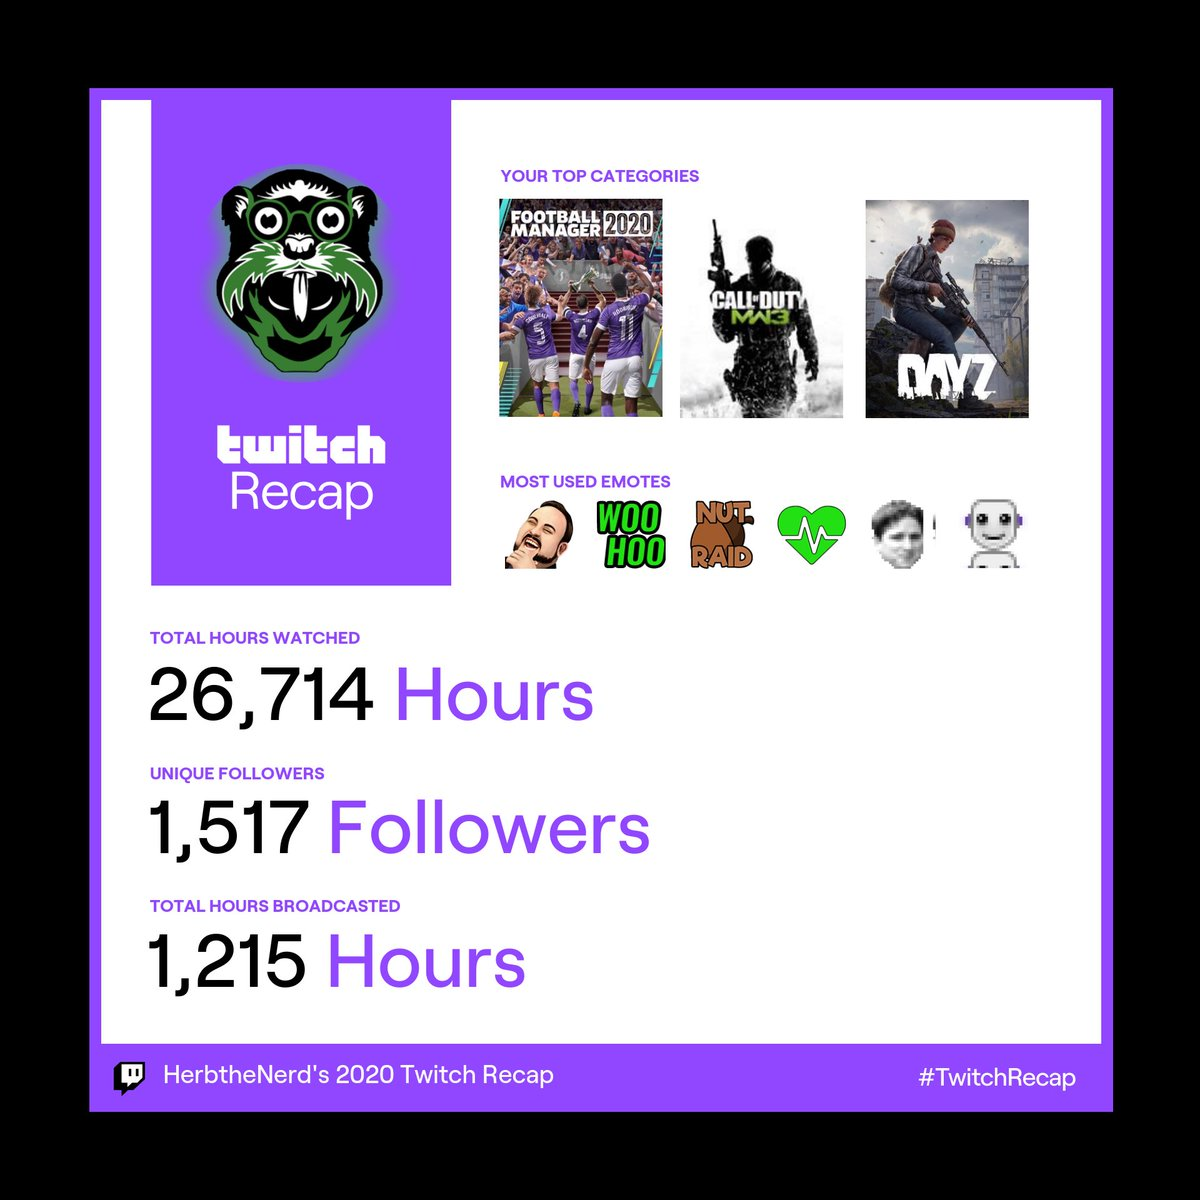 2020 what a year...  50 full days I spent live.   Average stream is 4.8 hours  So I was live on 251 days in the year  So that means I was live streaming 69% of the year 😎  #twitchrecap